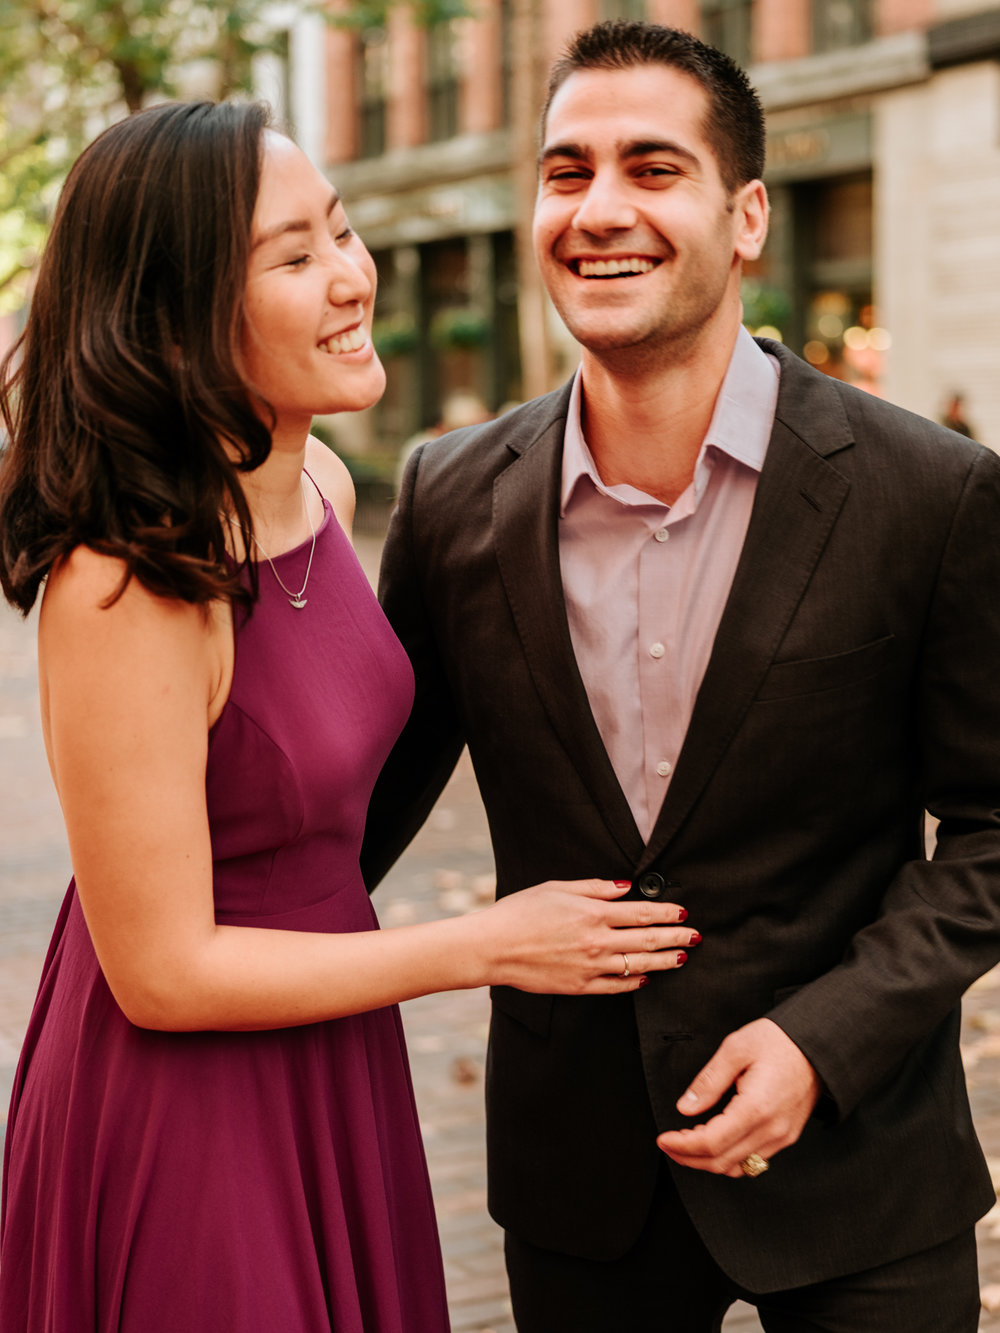 Seattle Engagement Photographer_Stolen Glimpses 8.jpg